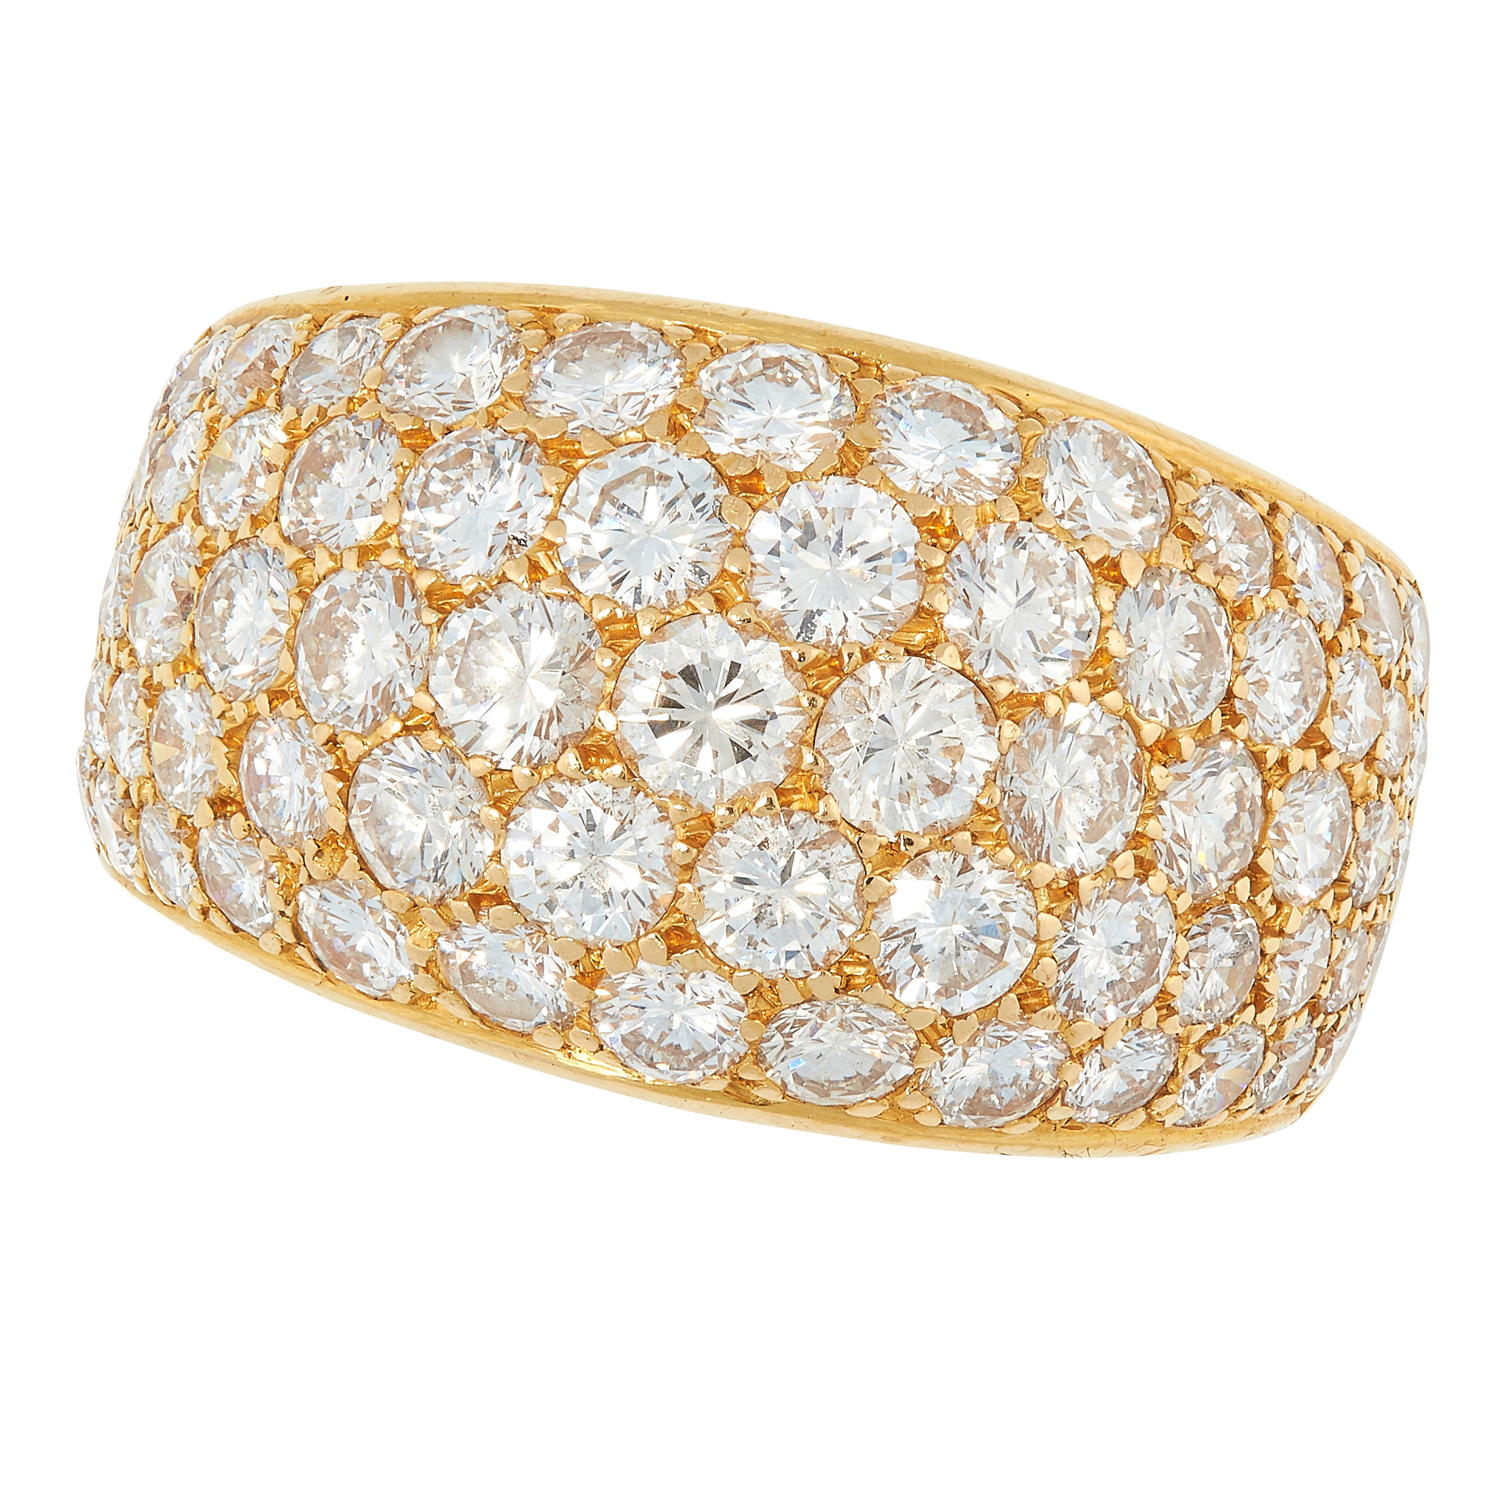 A DIAMOND DRESS RING, BULGARI in 18ct yellow gold,